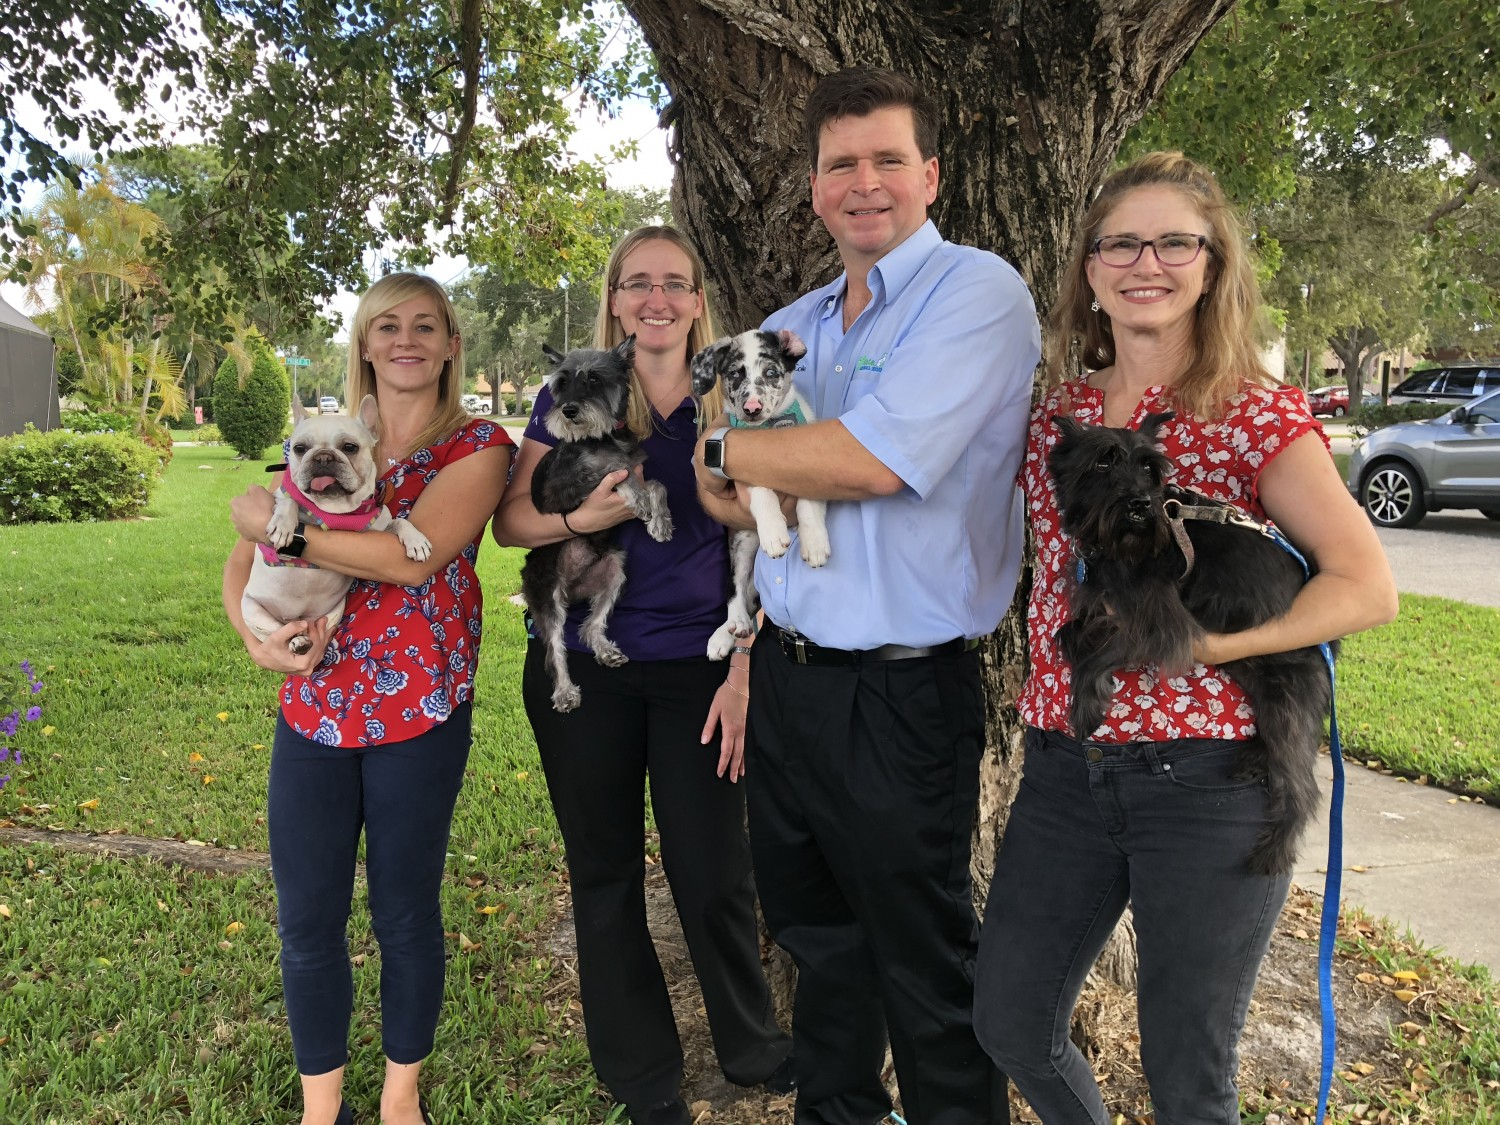 Sarasota Florida Veterinarians Edward Cole, Christina Whitcomb, Jeanette Cole. Marcie Burn Animal Medical Gulf Gate